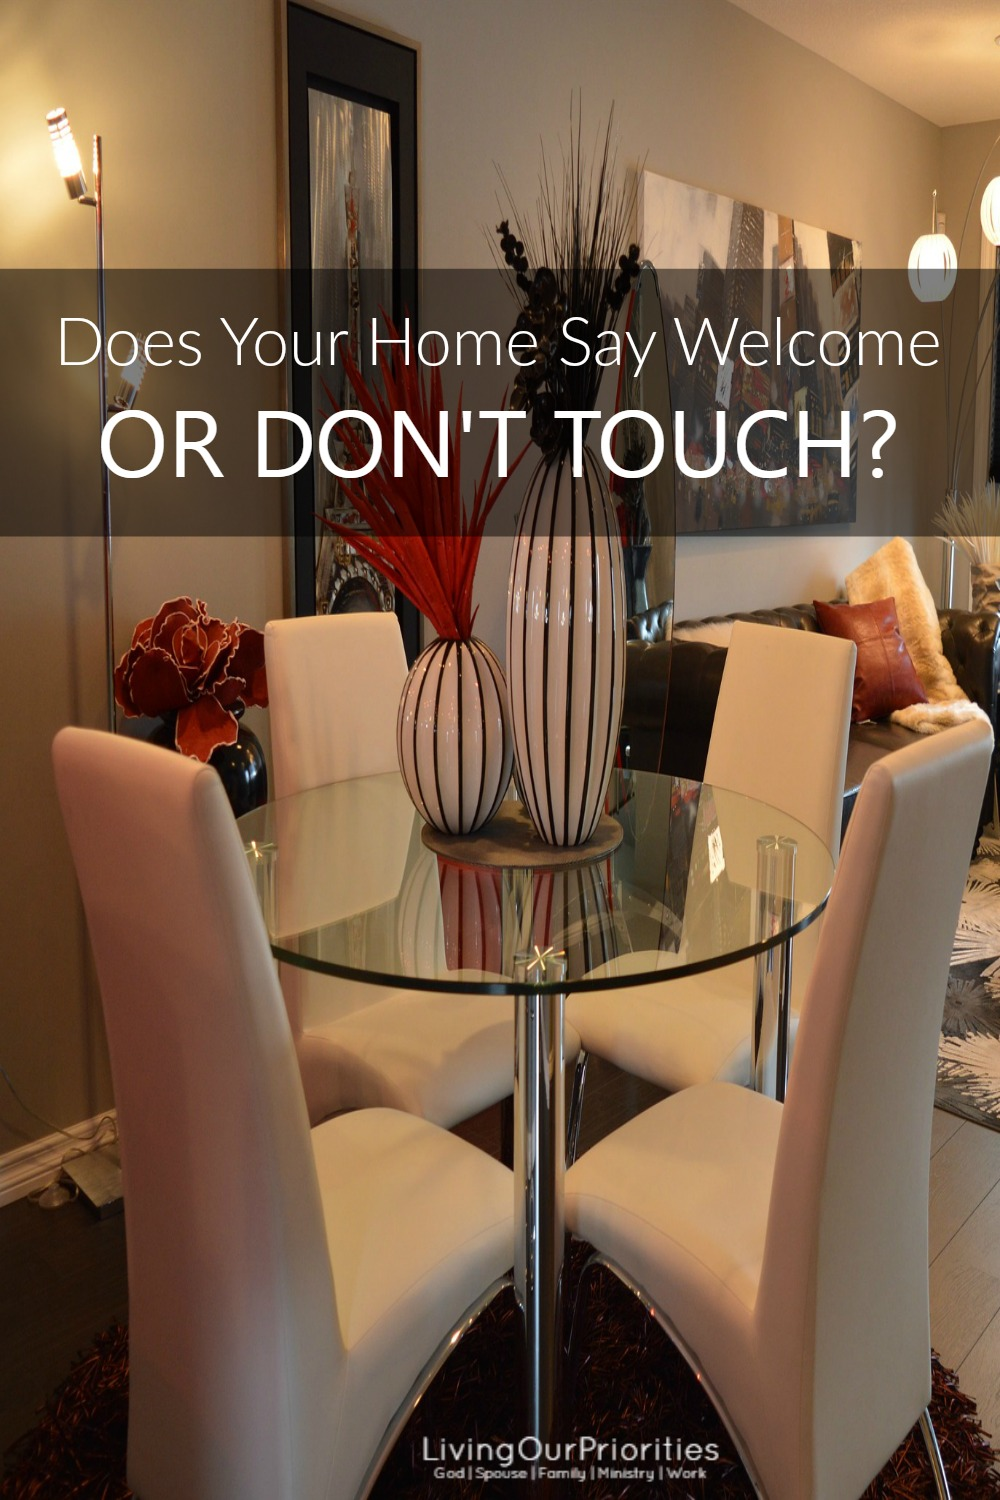 Have you created a home for family and friends to gather, play games, and create memories; or have you staged a house with fancy furniture and décor that says don't touch?